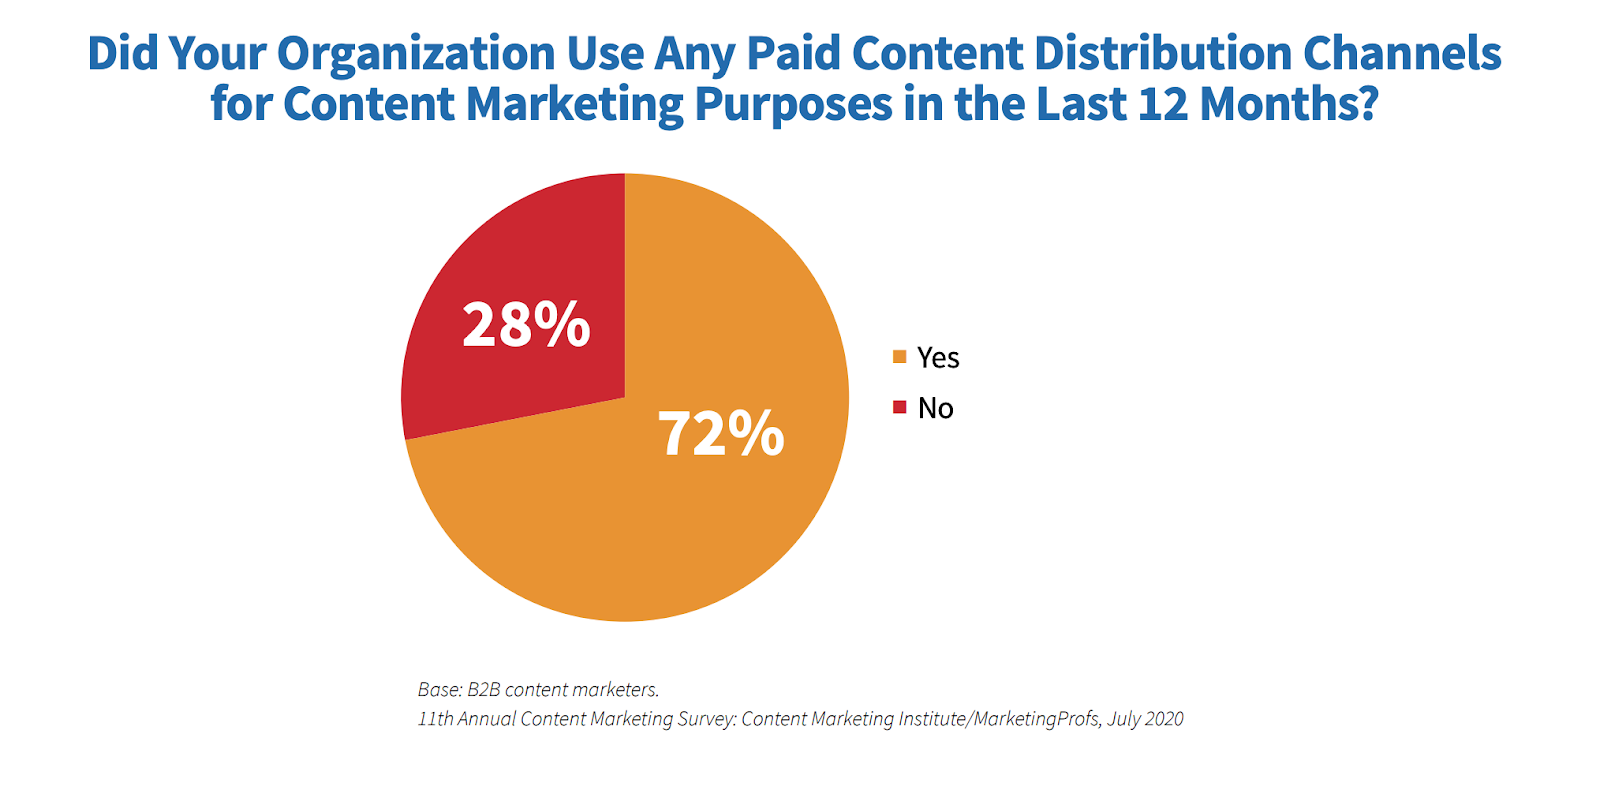 Did your organization use any paid content distribution channels for content marketing purposes in the last 12 months